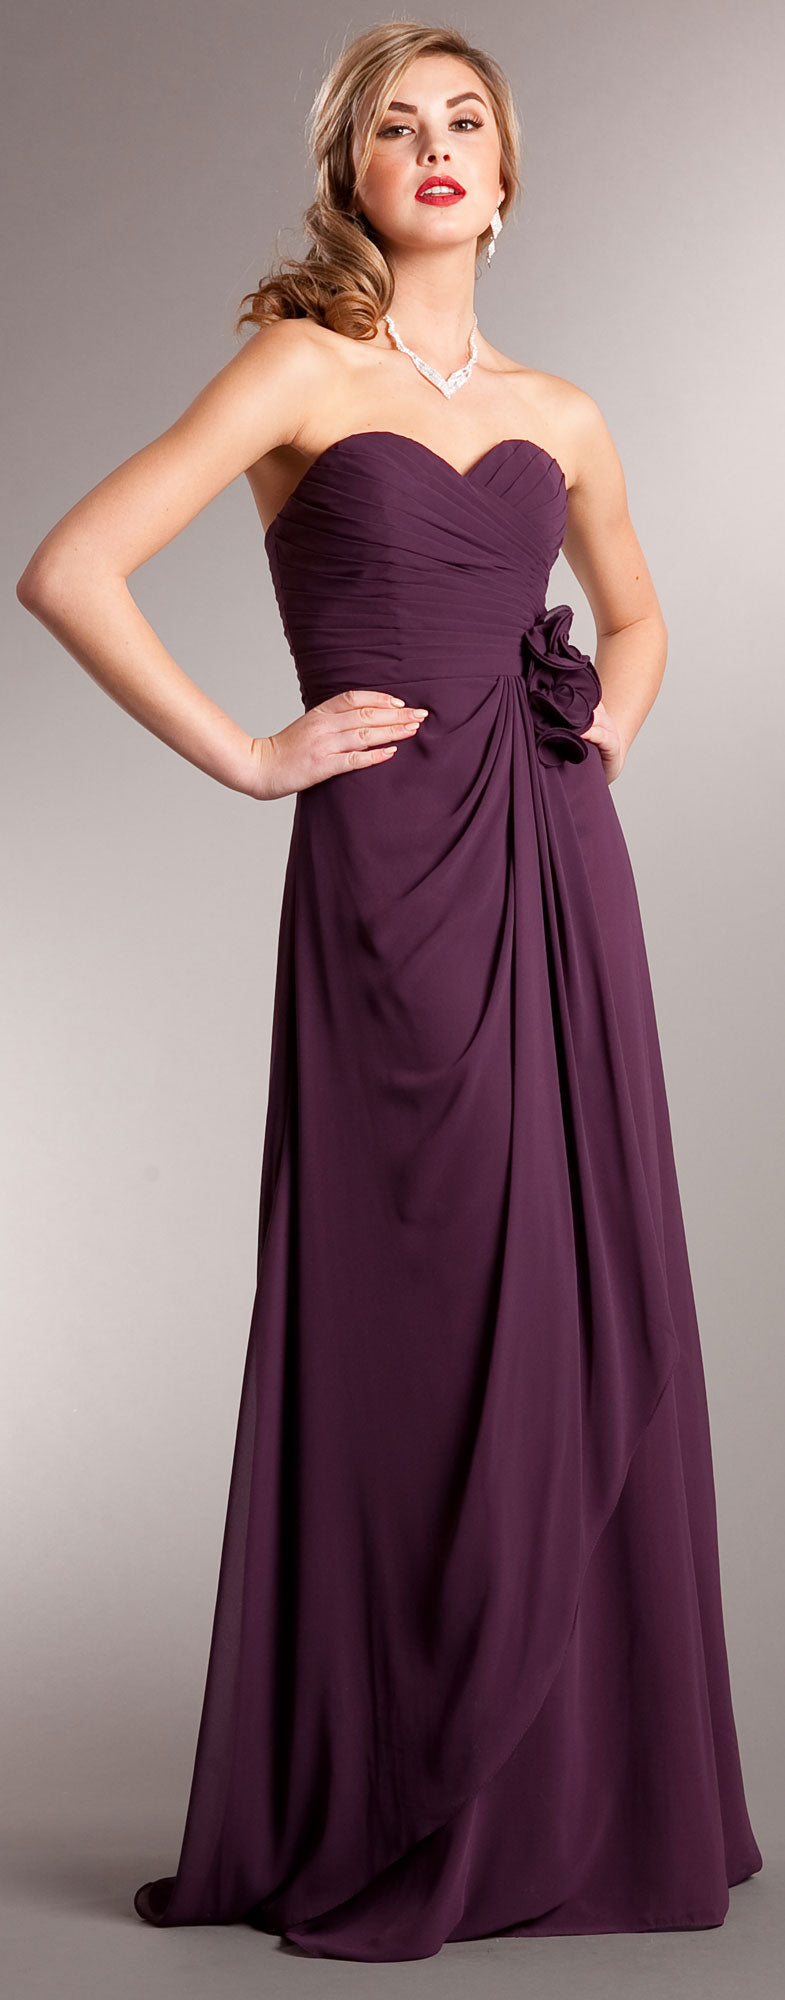 Main image of Pleated Wrap Style Floral Long Formal Bridesmaid Dress